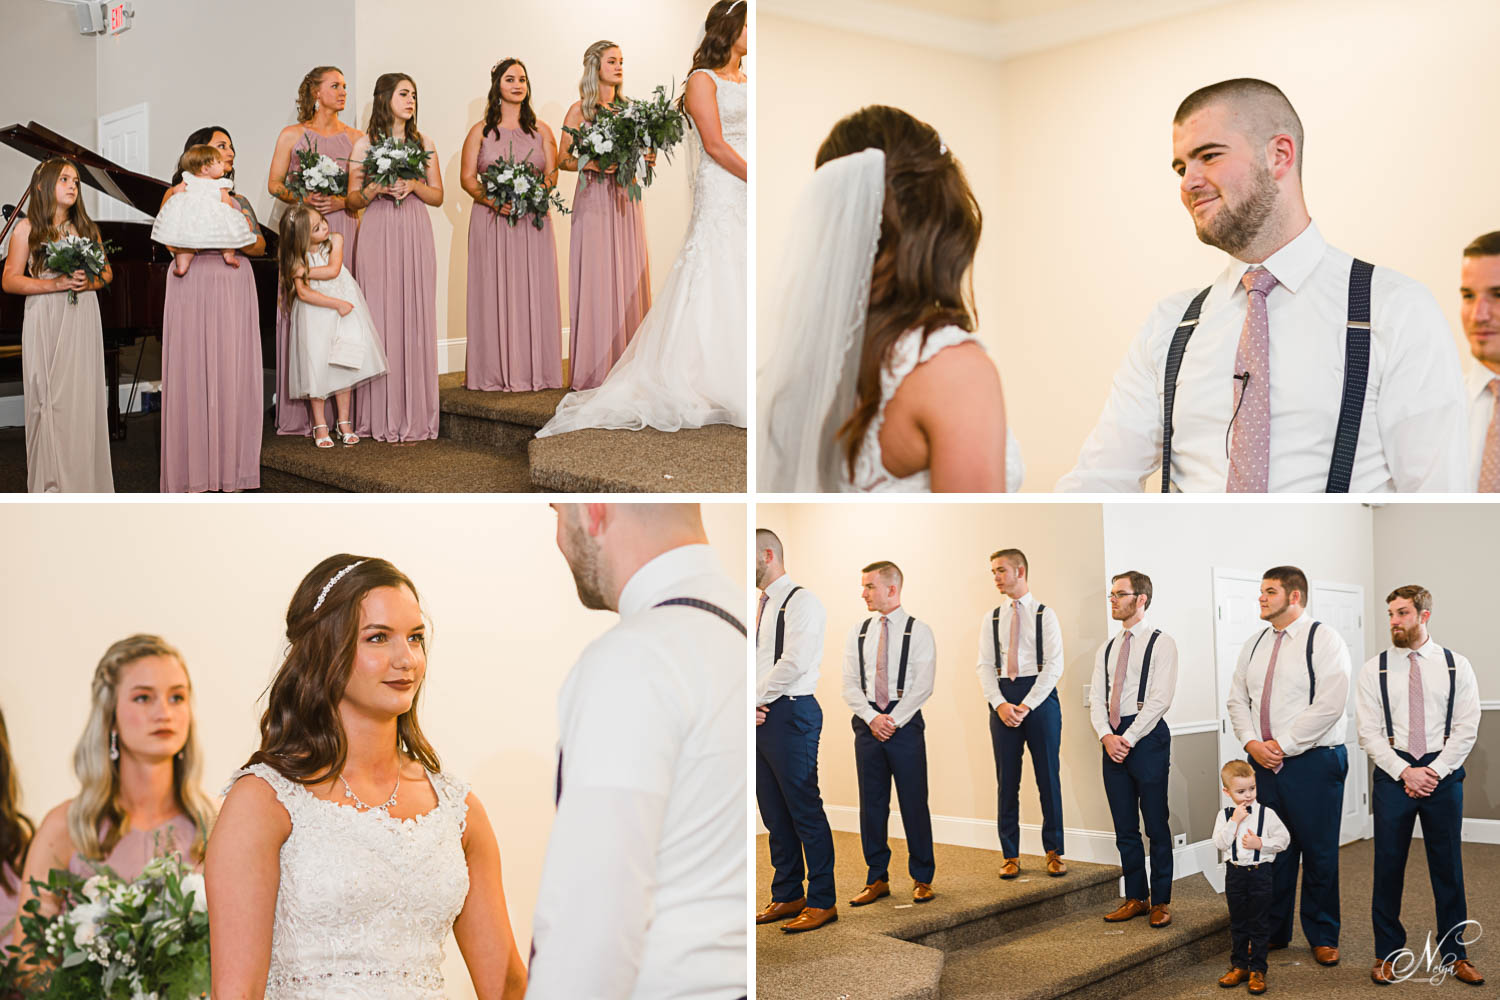 indoor windowless church wedding ceremony with bridesmaids wearing lavendar dresses.